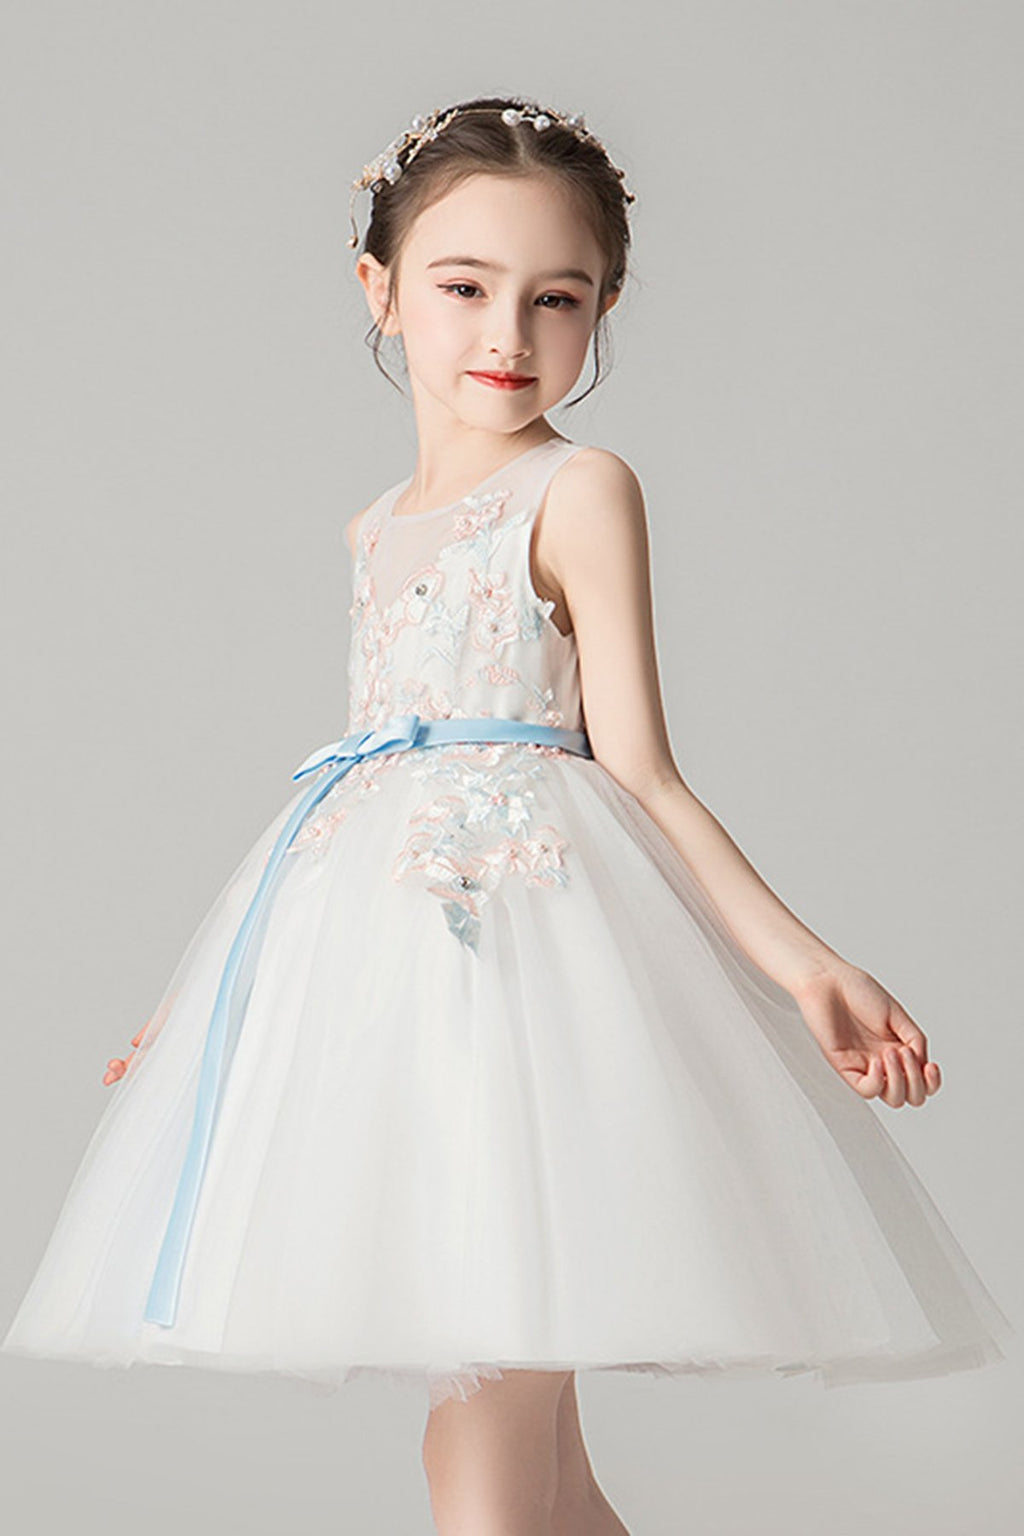 A-Line Appliques Sweet Lace Princess Dress Flower Girl Dresses 120cm White